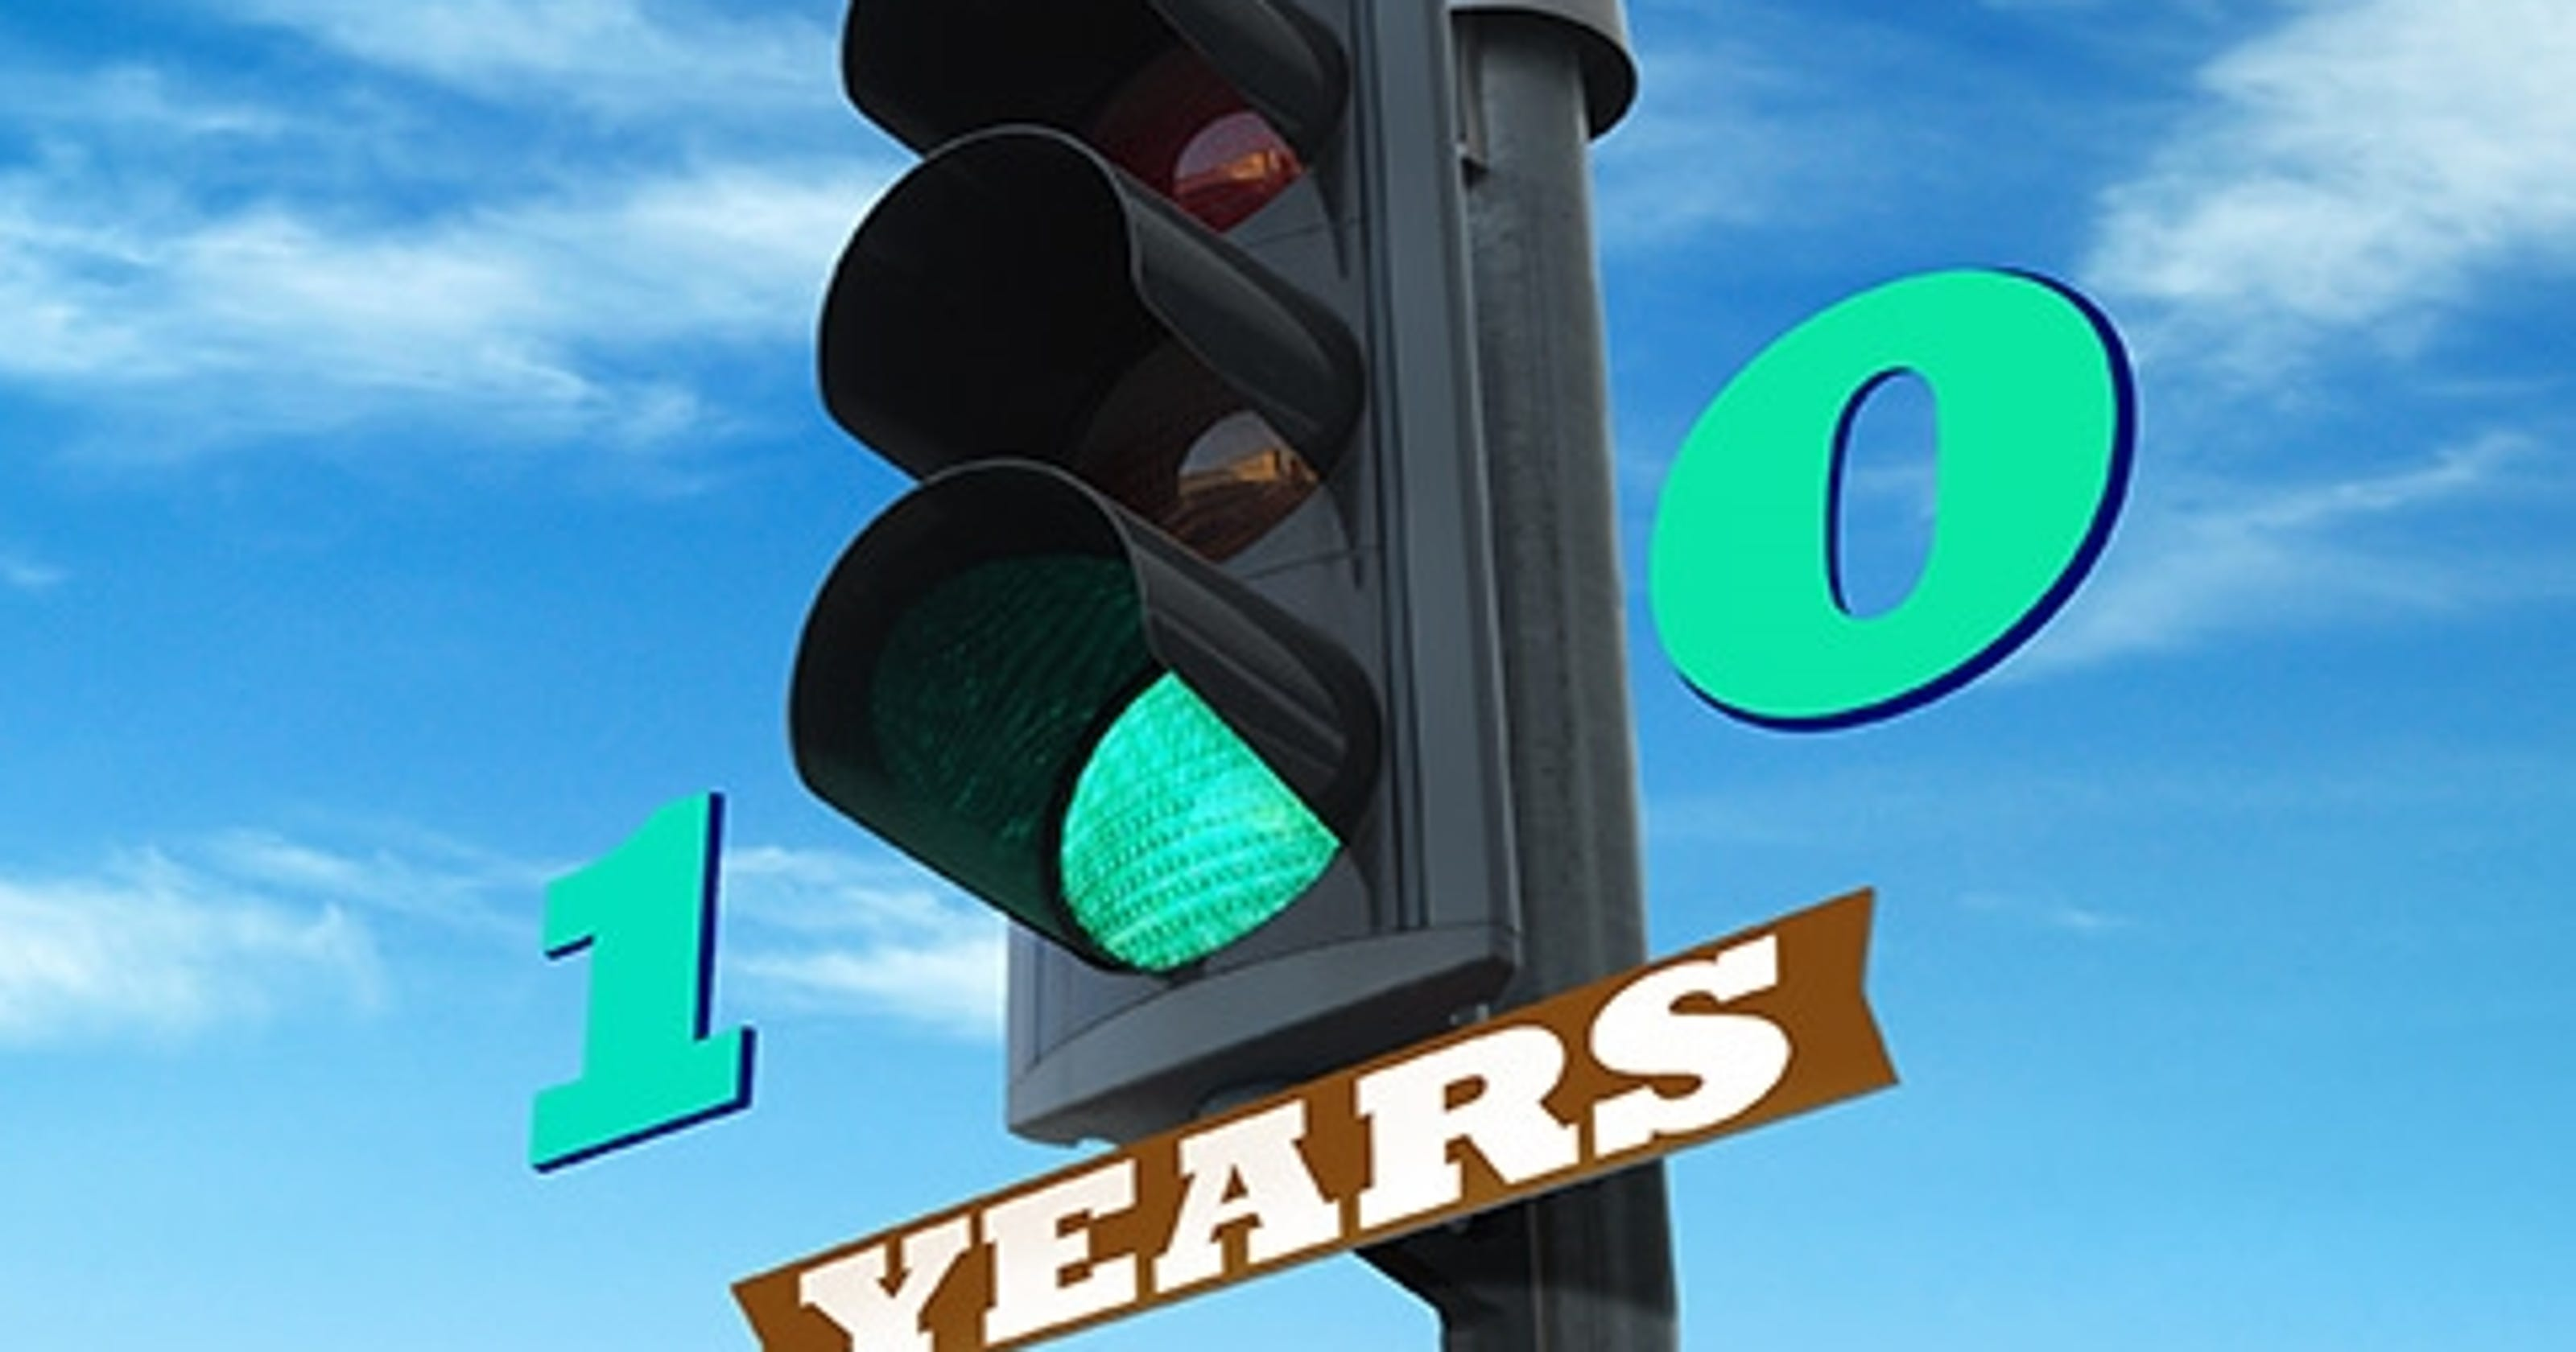 Happy 100th birthday to the electric traffic light